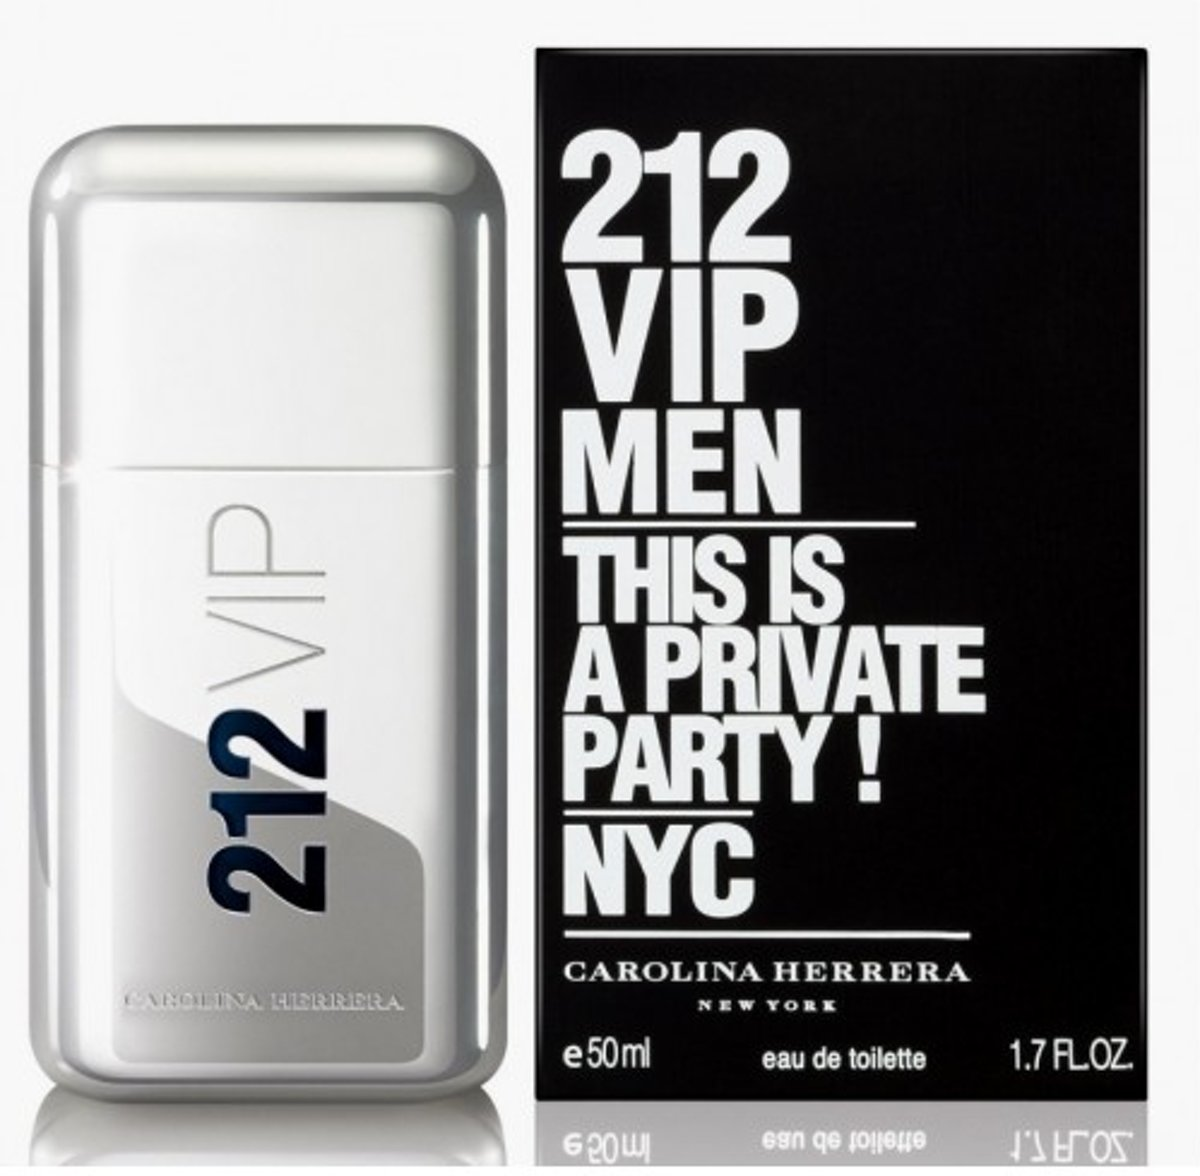 MULTI BUNDEL 4 stuks Carolina Herrera 212 Vip Men Eau De Toilette Spray 50ml